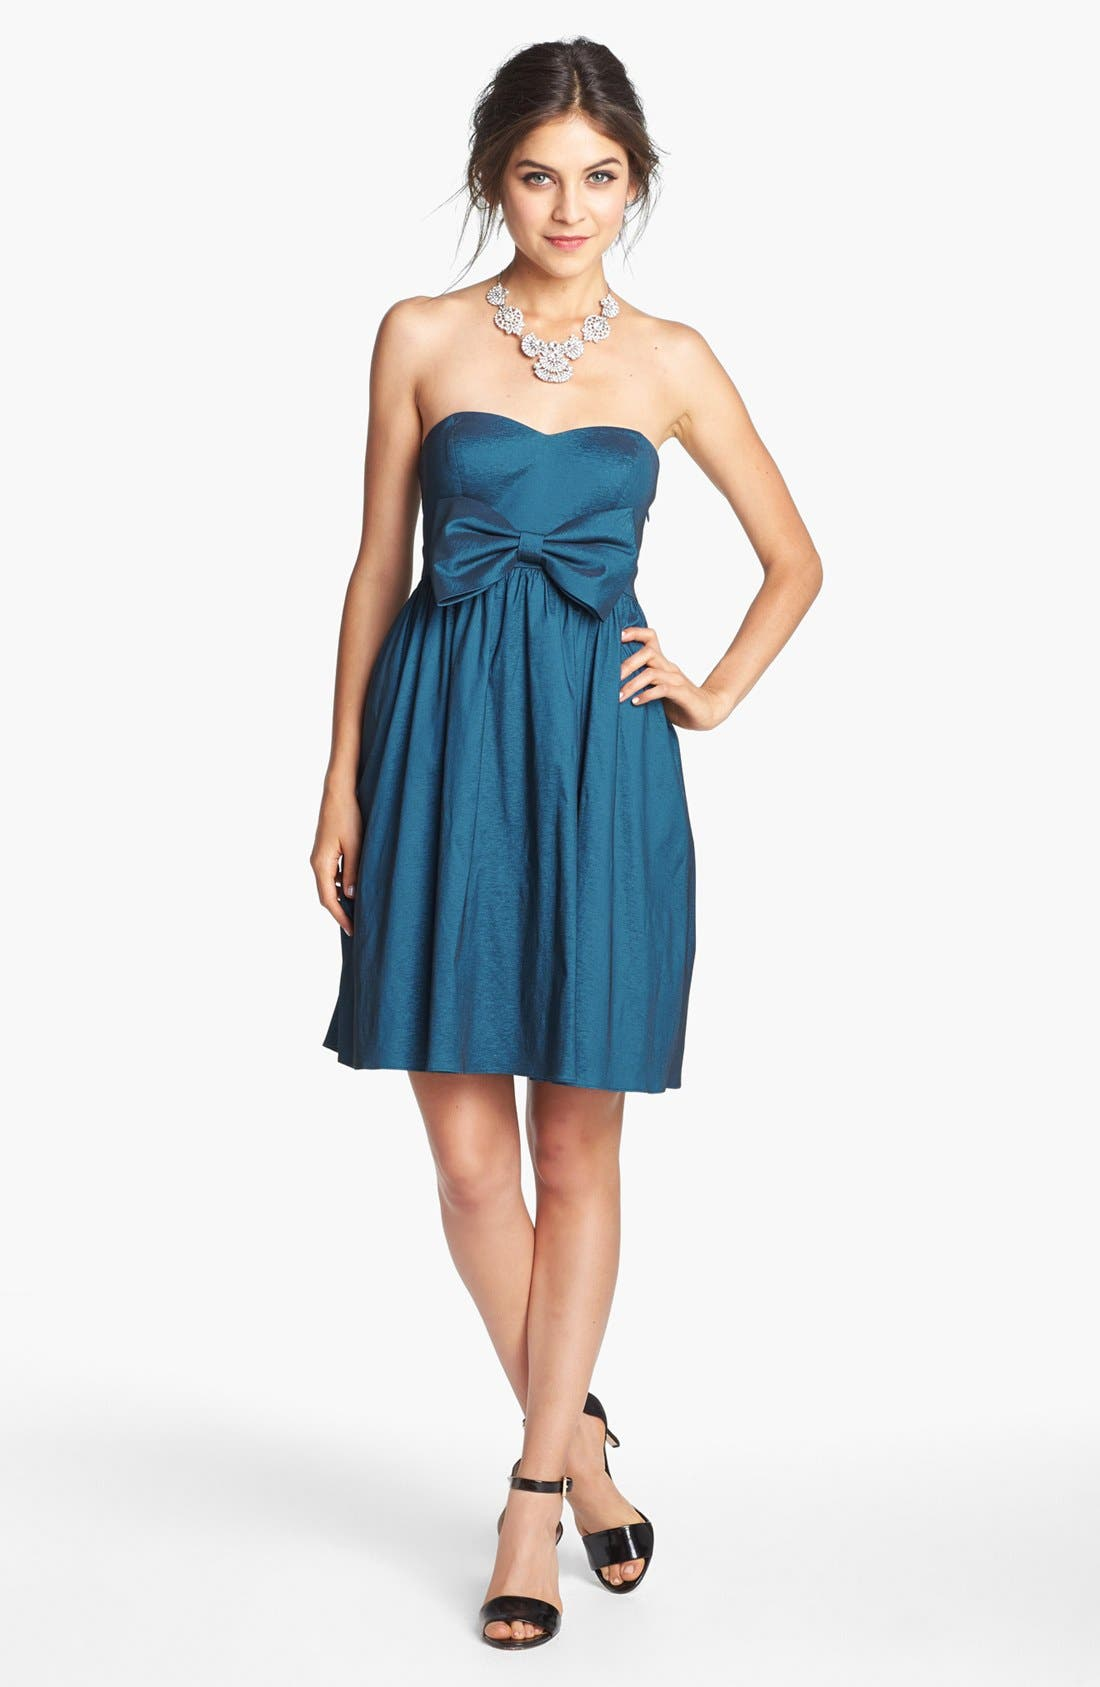 HAILEY BY ADRIANNA PAPELL, Bow Detail Taffeta Fit & Flare Dress, Main thumbnail 1, color, 403